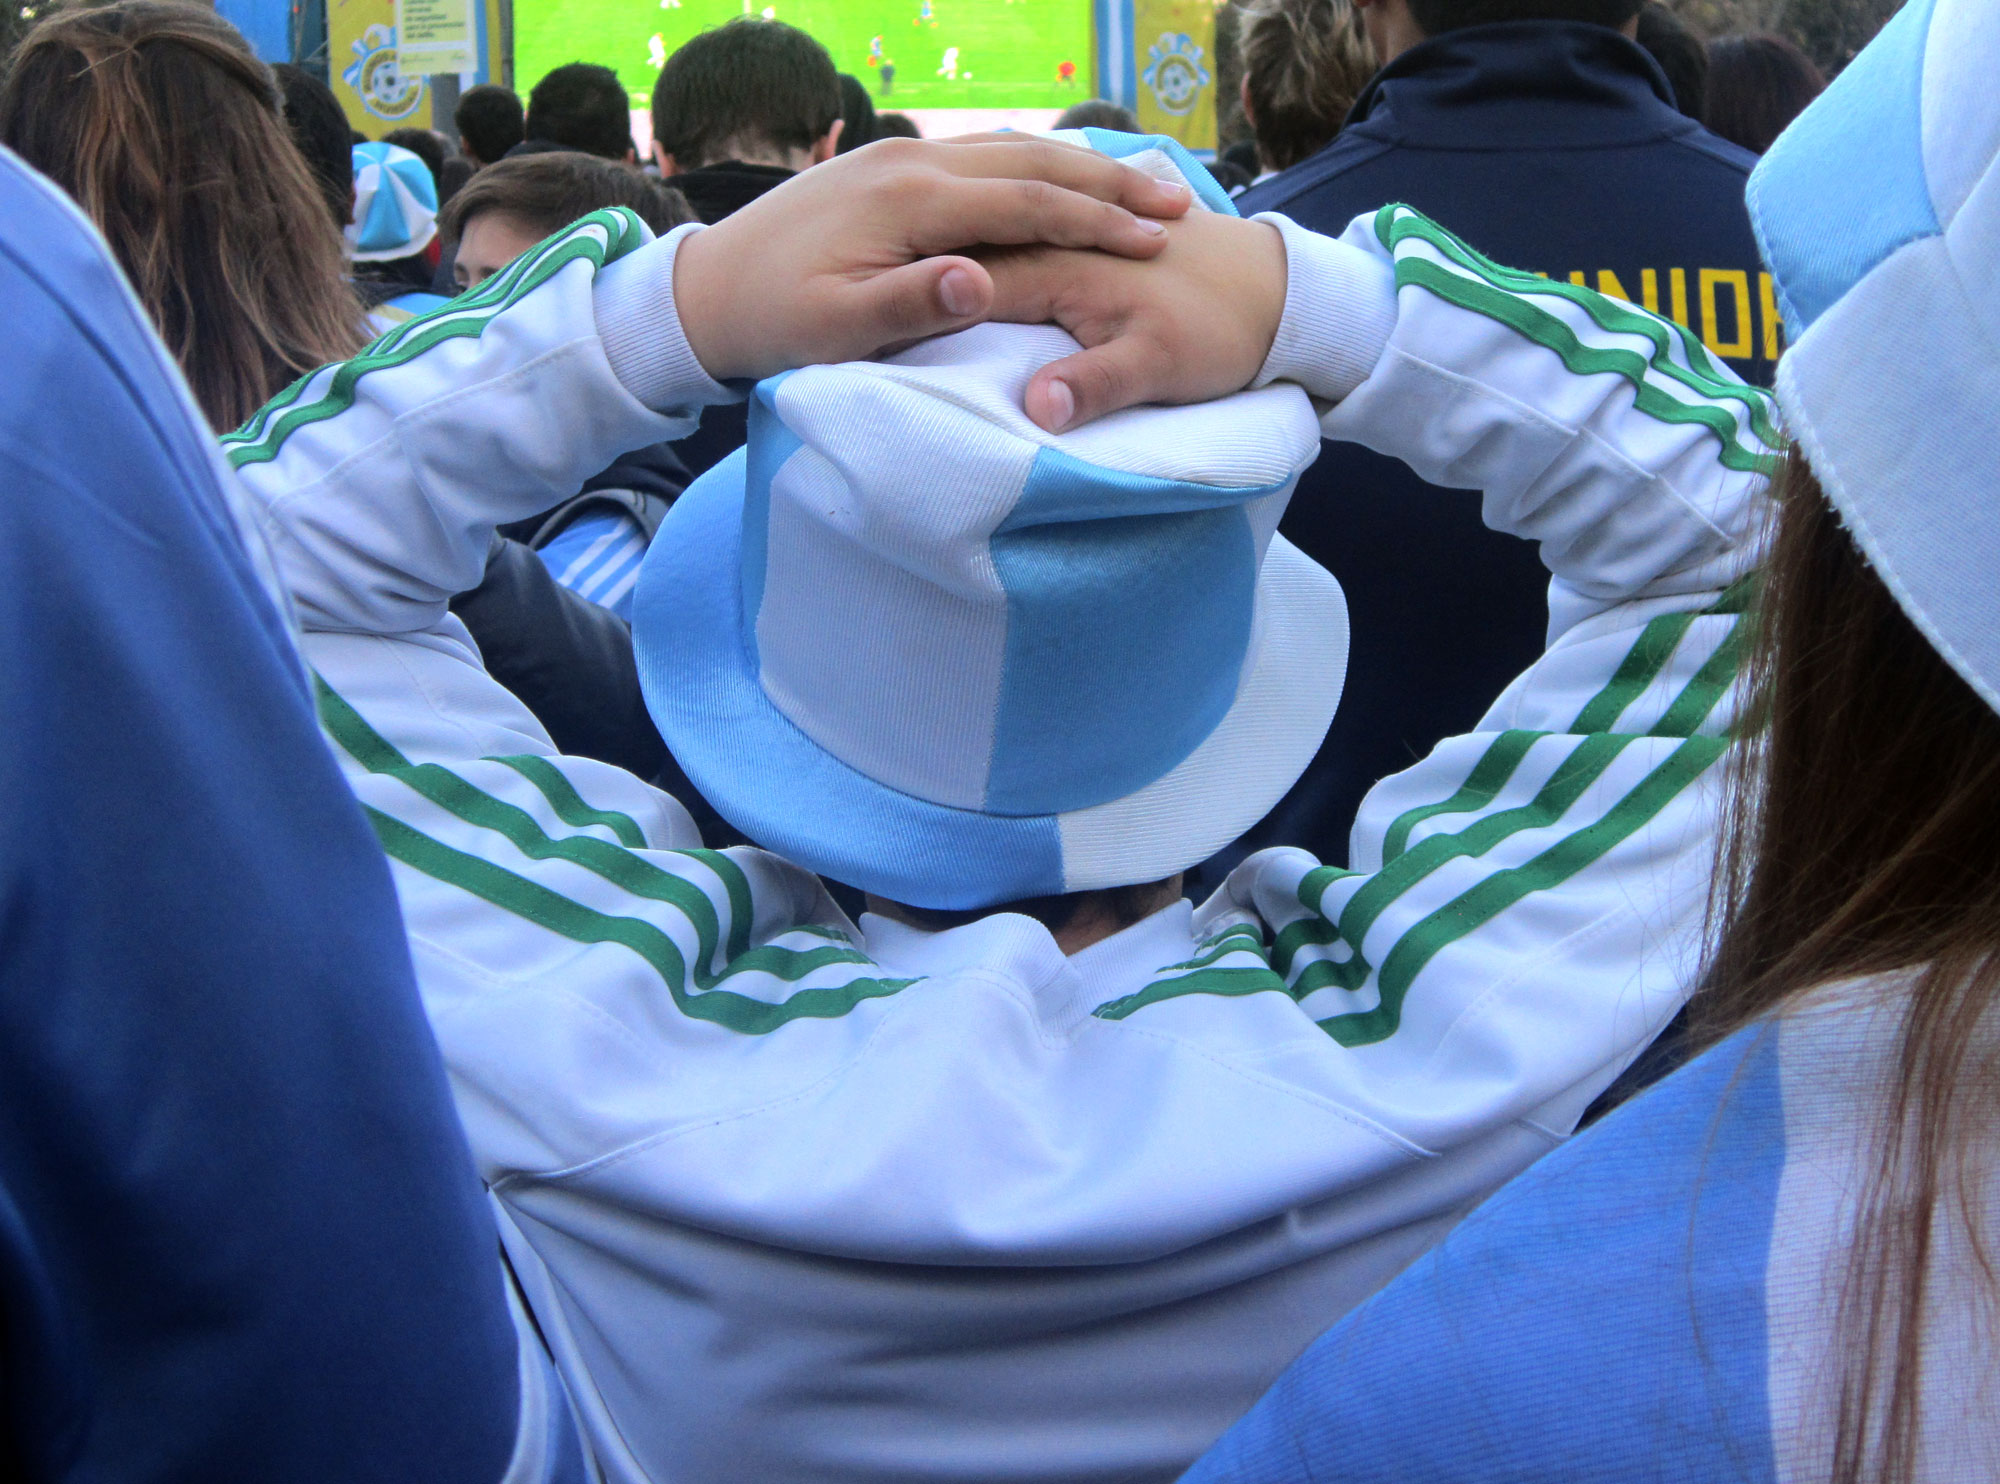 But after Mario Gotze's winner in the 113th minute, a palpable sense of deflation swept across Buenos Aires